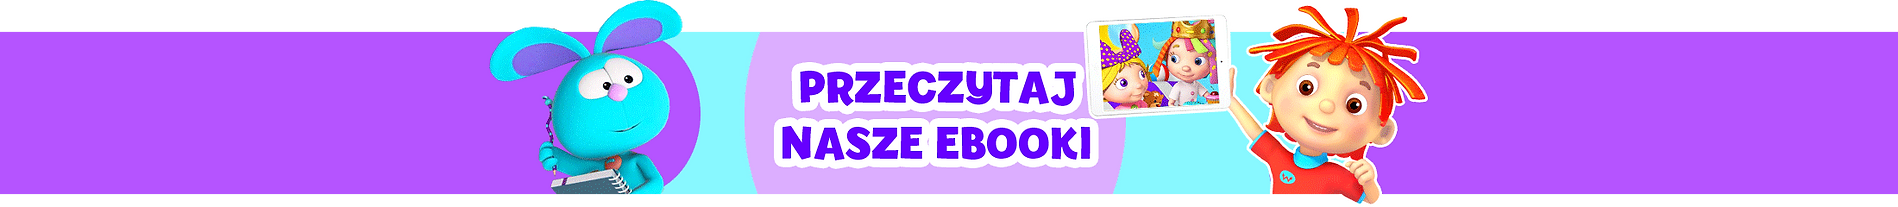 Polish---Read-Our-eBooks---Banner.png